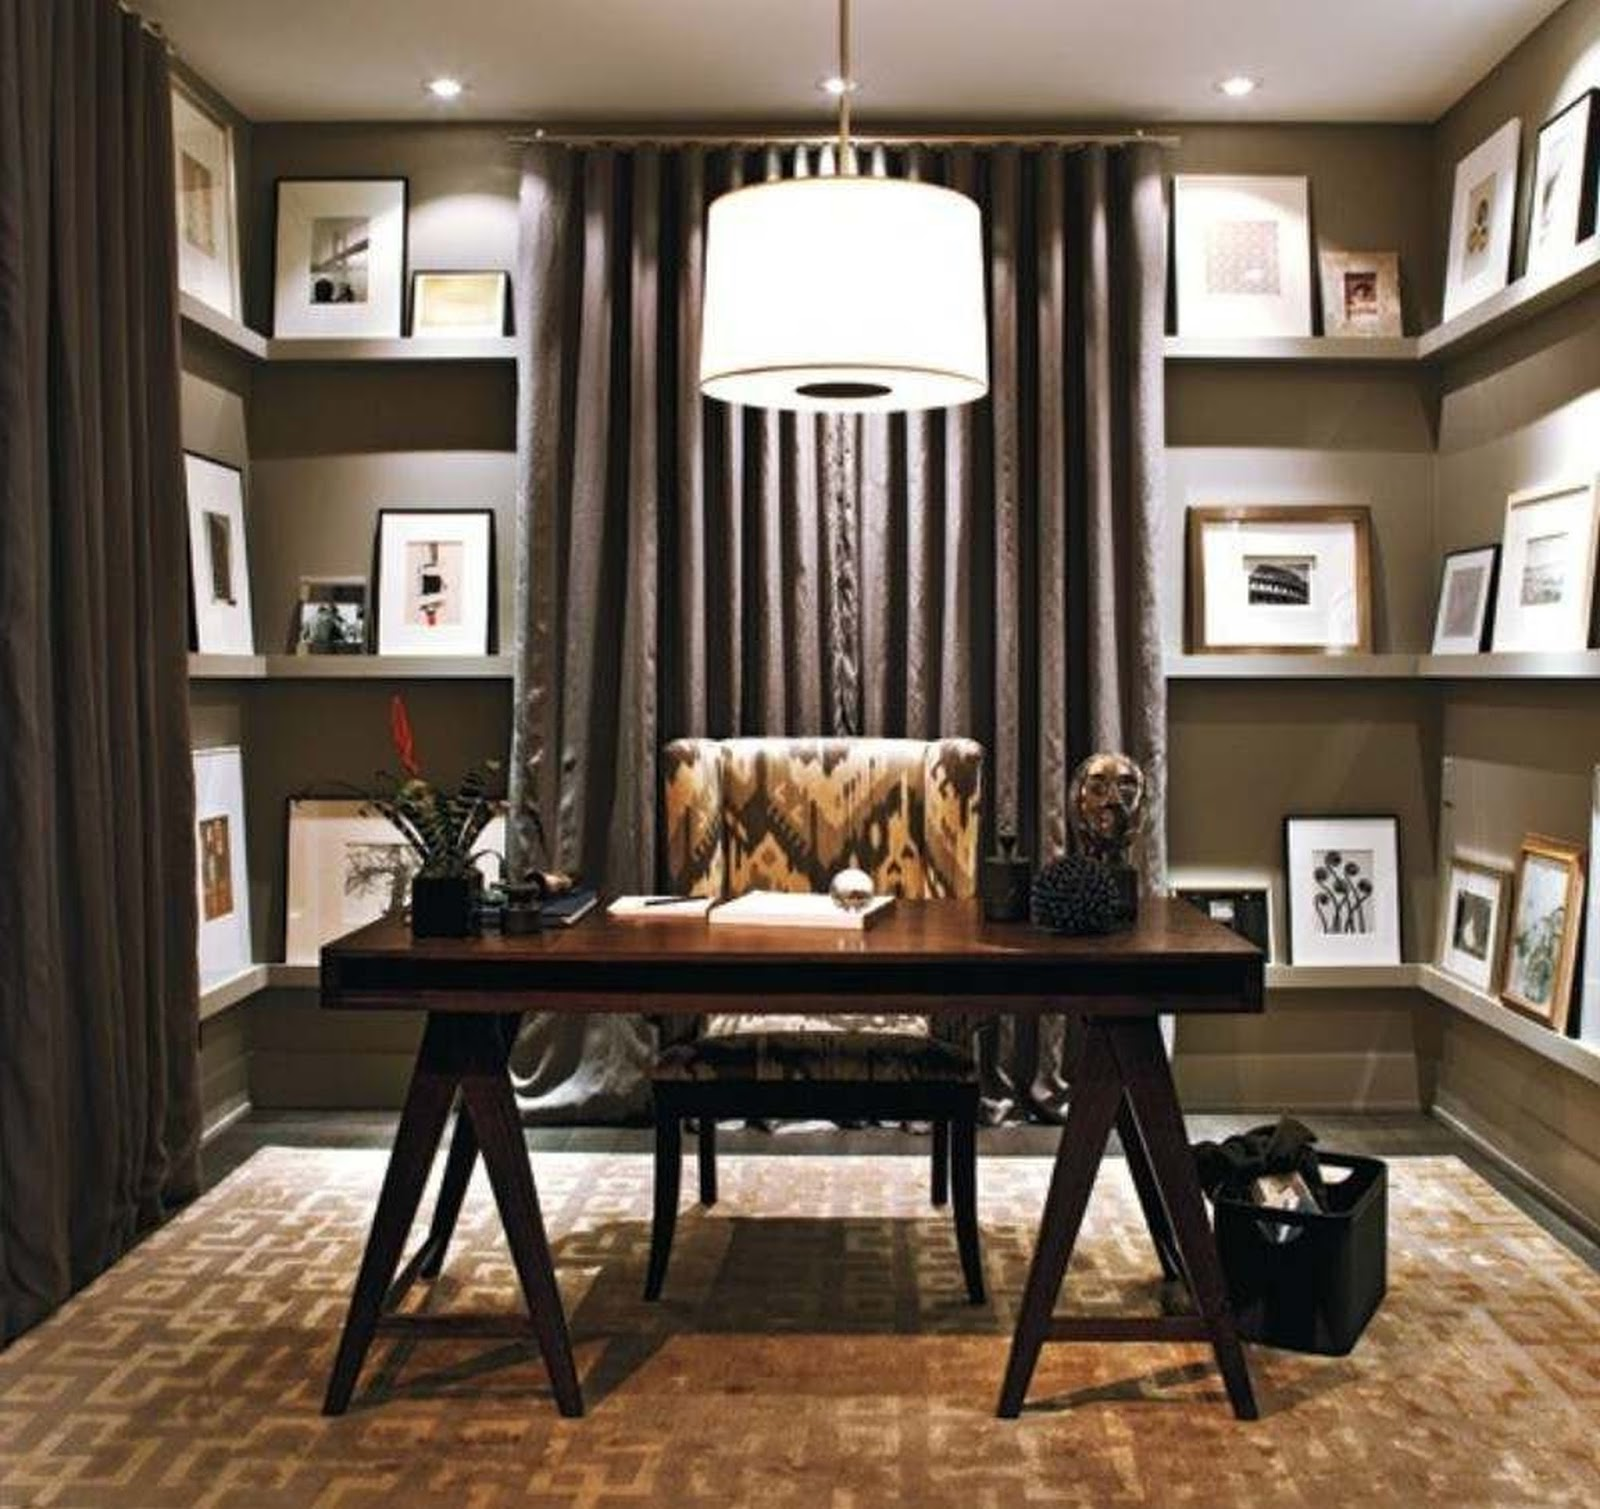 24 Luxury And Modern Home Office Designs: 5 Tips How To Decorating An Artistic Home Office